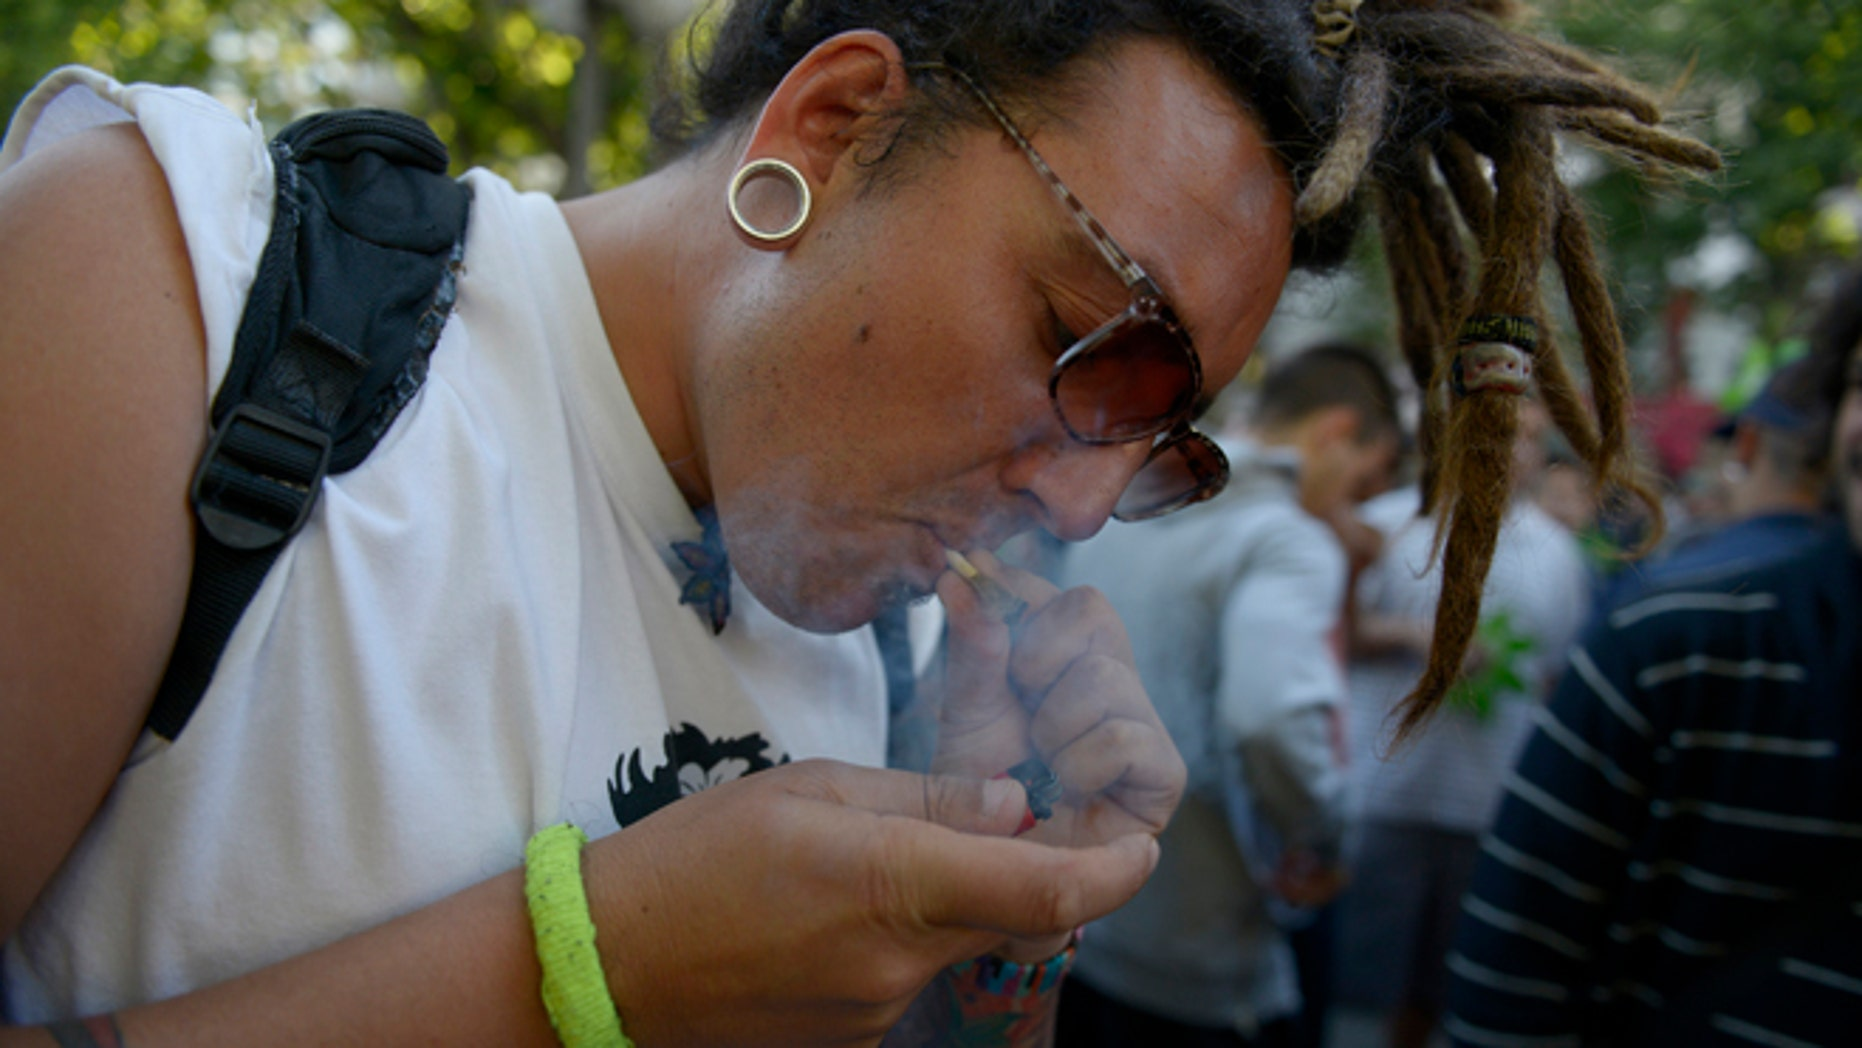 A man smokes a marijuana cigarette during a demonstration in support of the legalization of marijuana outside the Congress in Montevideo, Uruguay, Tuesday, Dec. 10, 2013. Uruguay's Senate was finishing its final debate Tuesday before voting on a plan to create the world's first national marijuana market, with the state regulating the entire process of growing, selling and using a drug that is illegal almost everywhere else. (AP Photo/Matilde Campodonico)